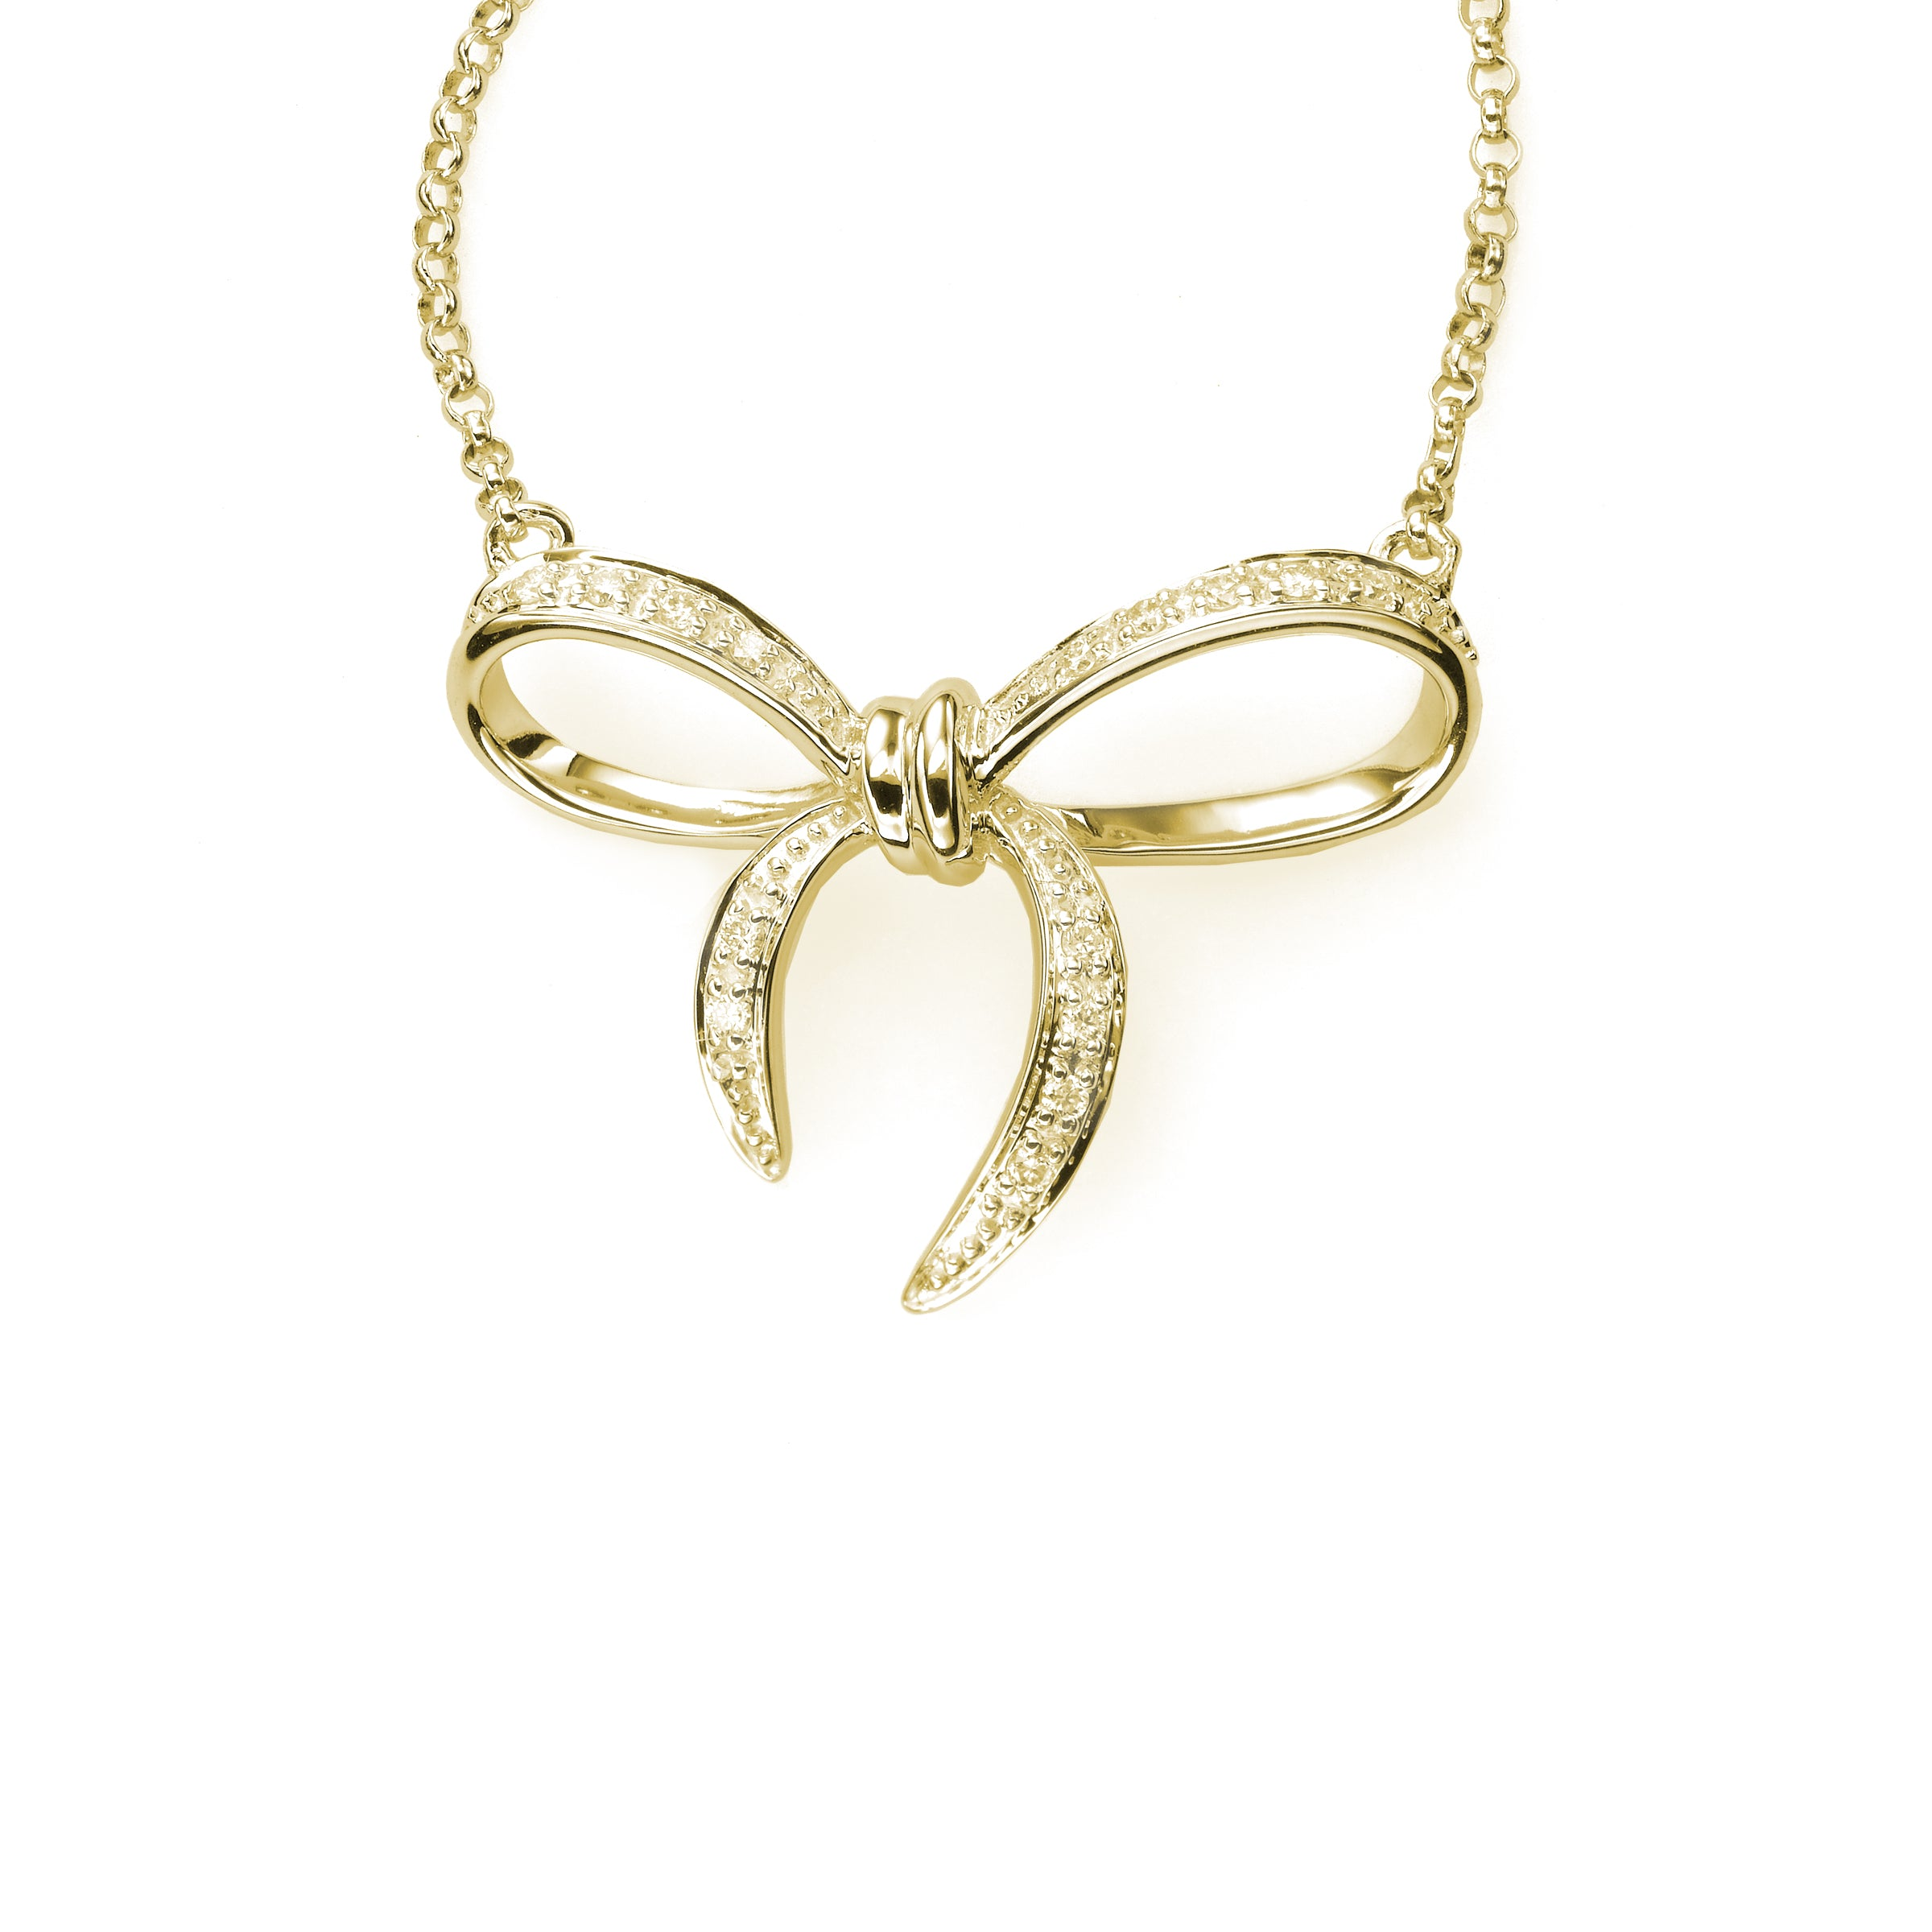 Diamond Bow Necklace, 16 Inch, 14K Yellow Gold